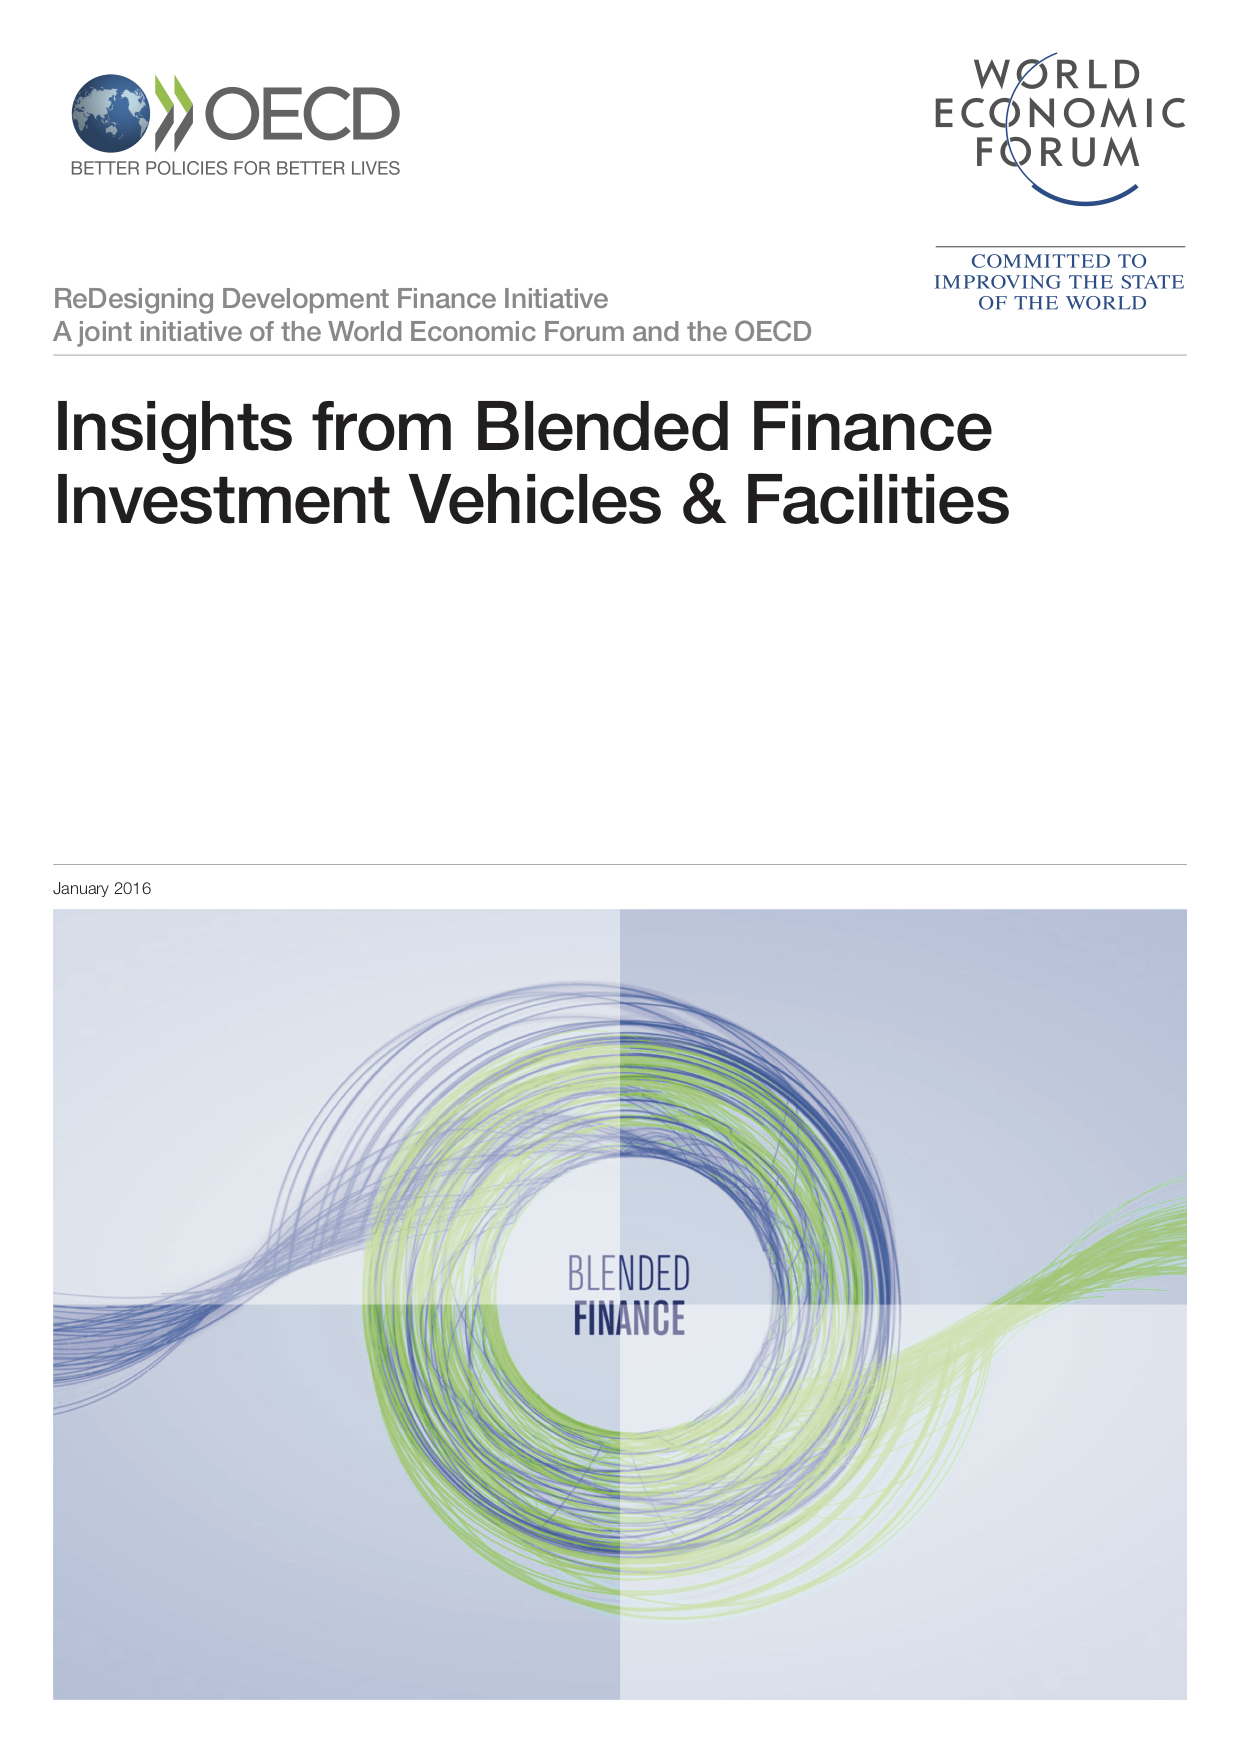 Insights from Blended Finance Investment Vehicles & Facilities